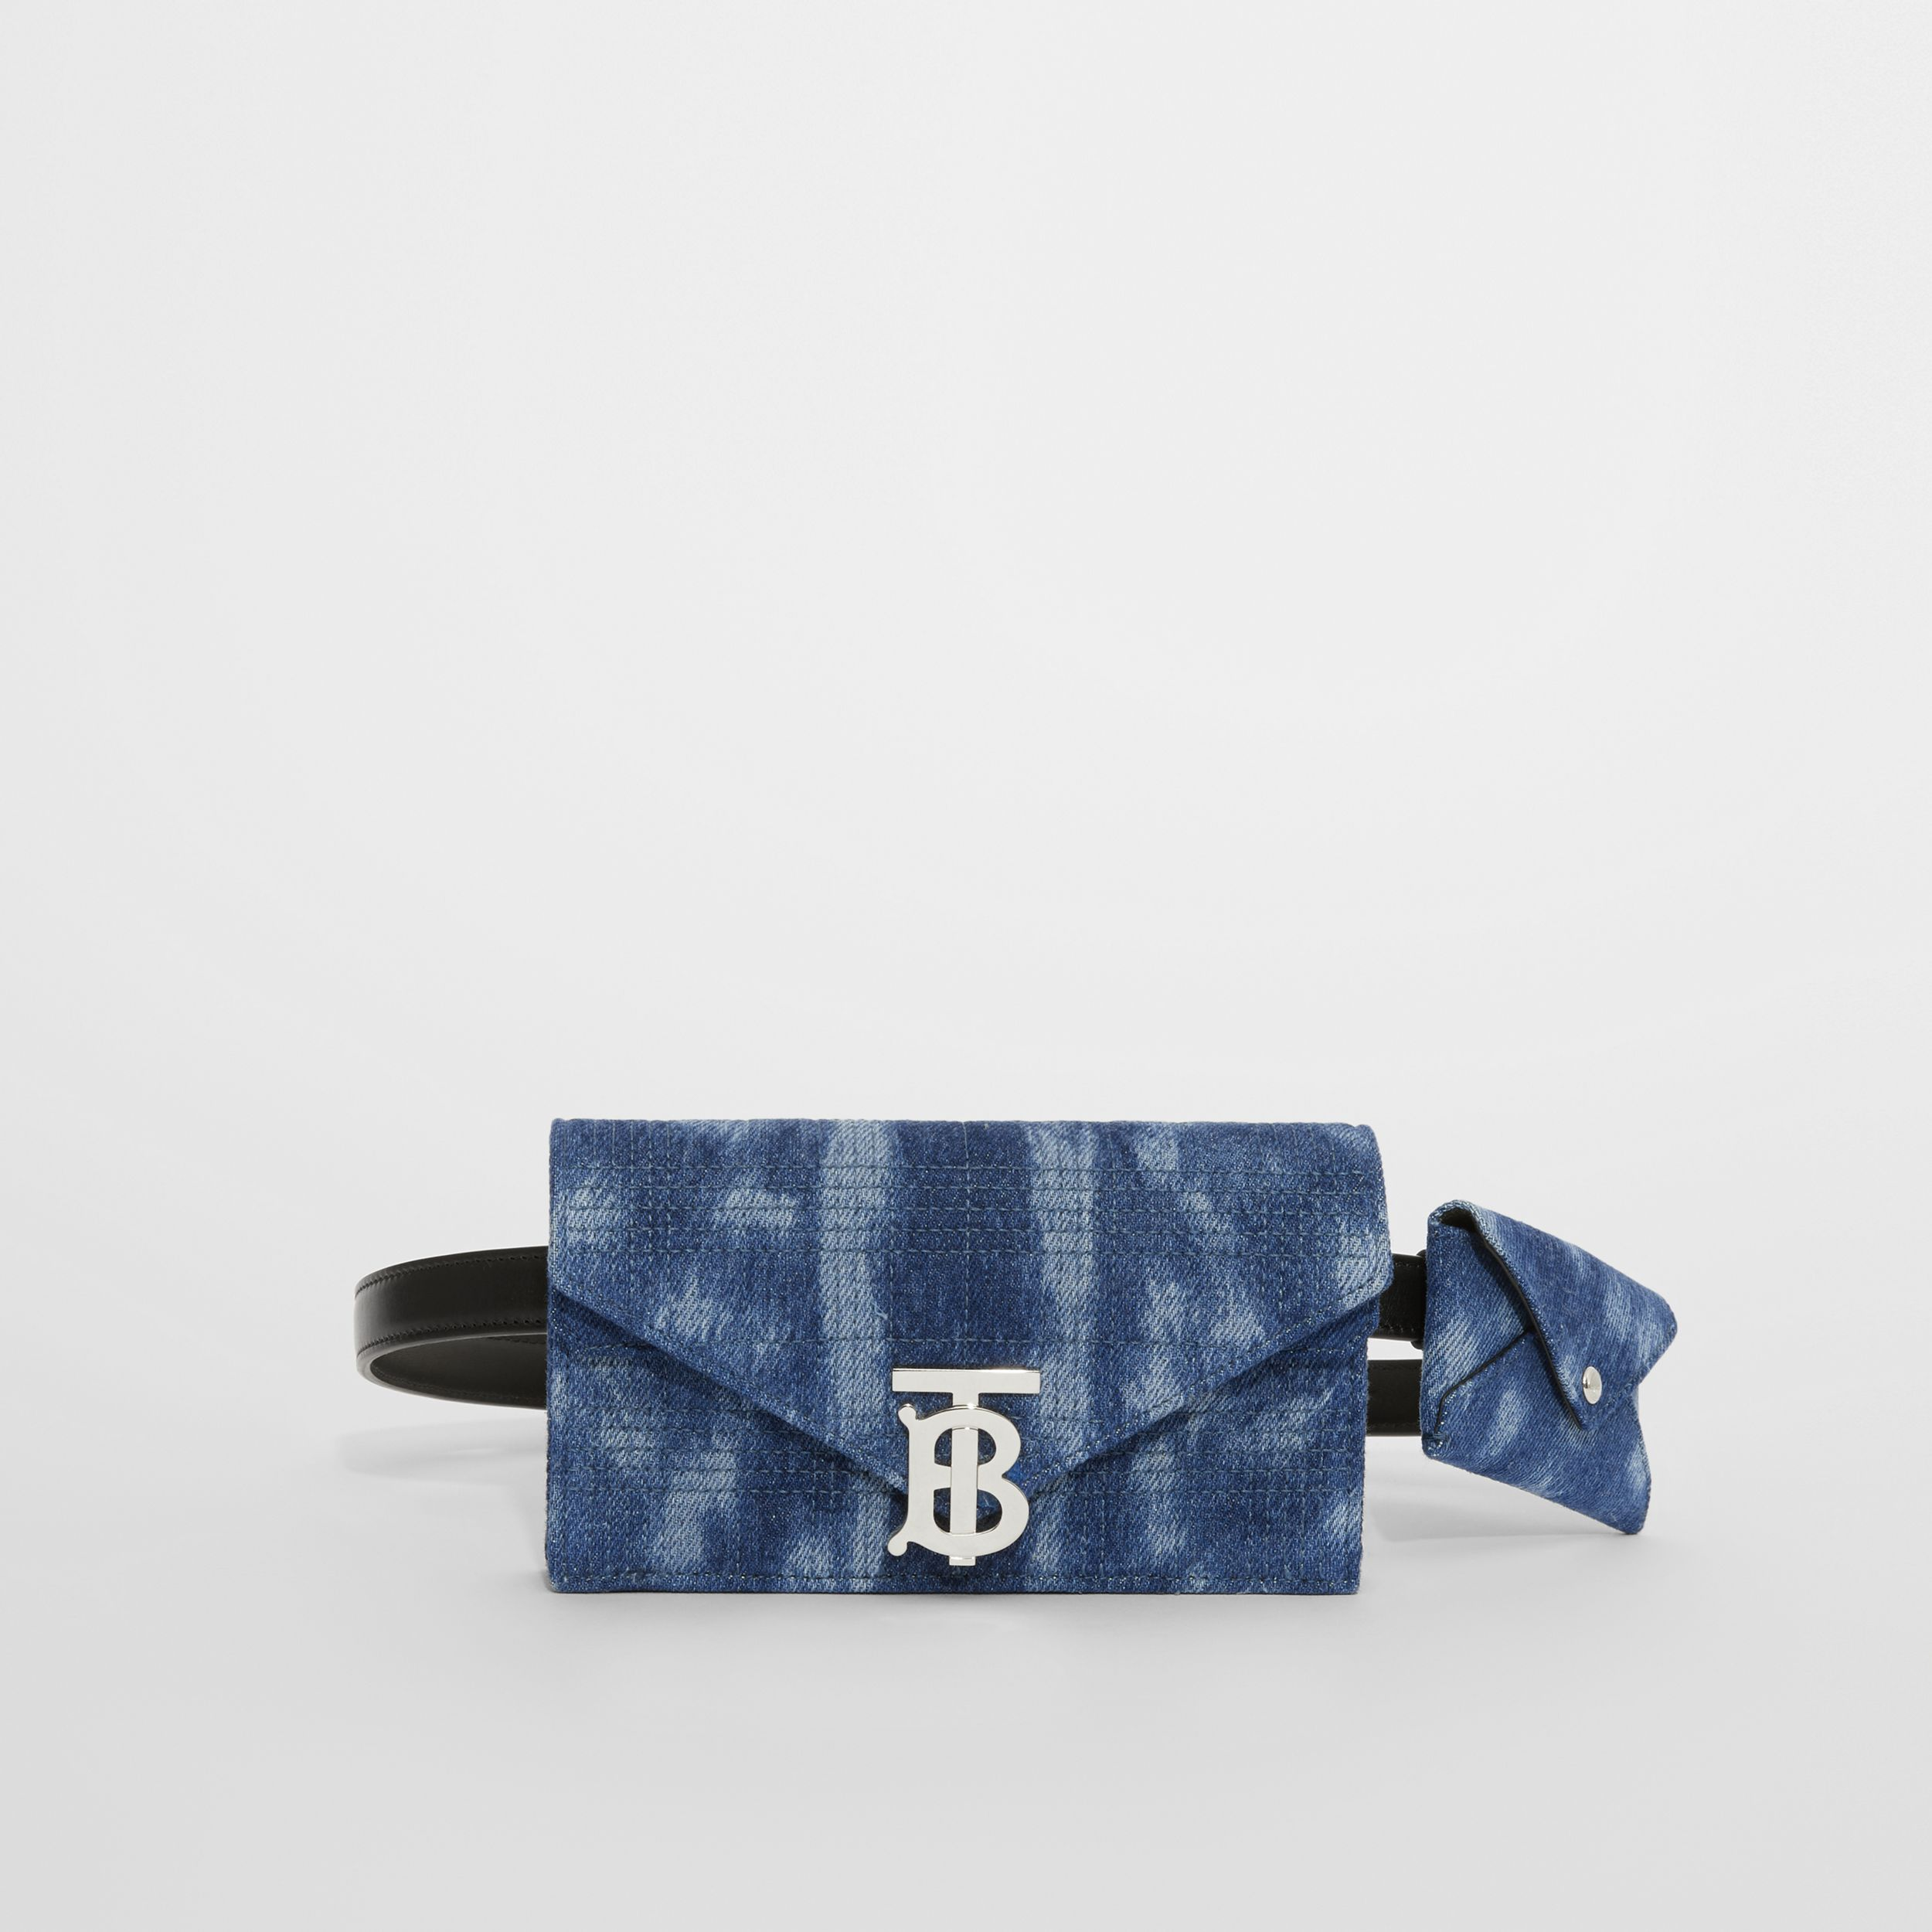 Belted Quilted Denim TB Envelope Clutch in Blue - Women | Burberry Canada - 1